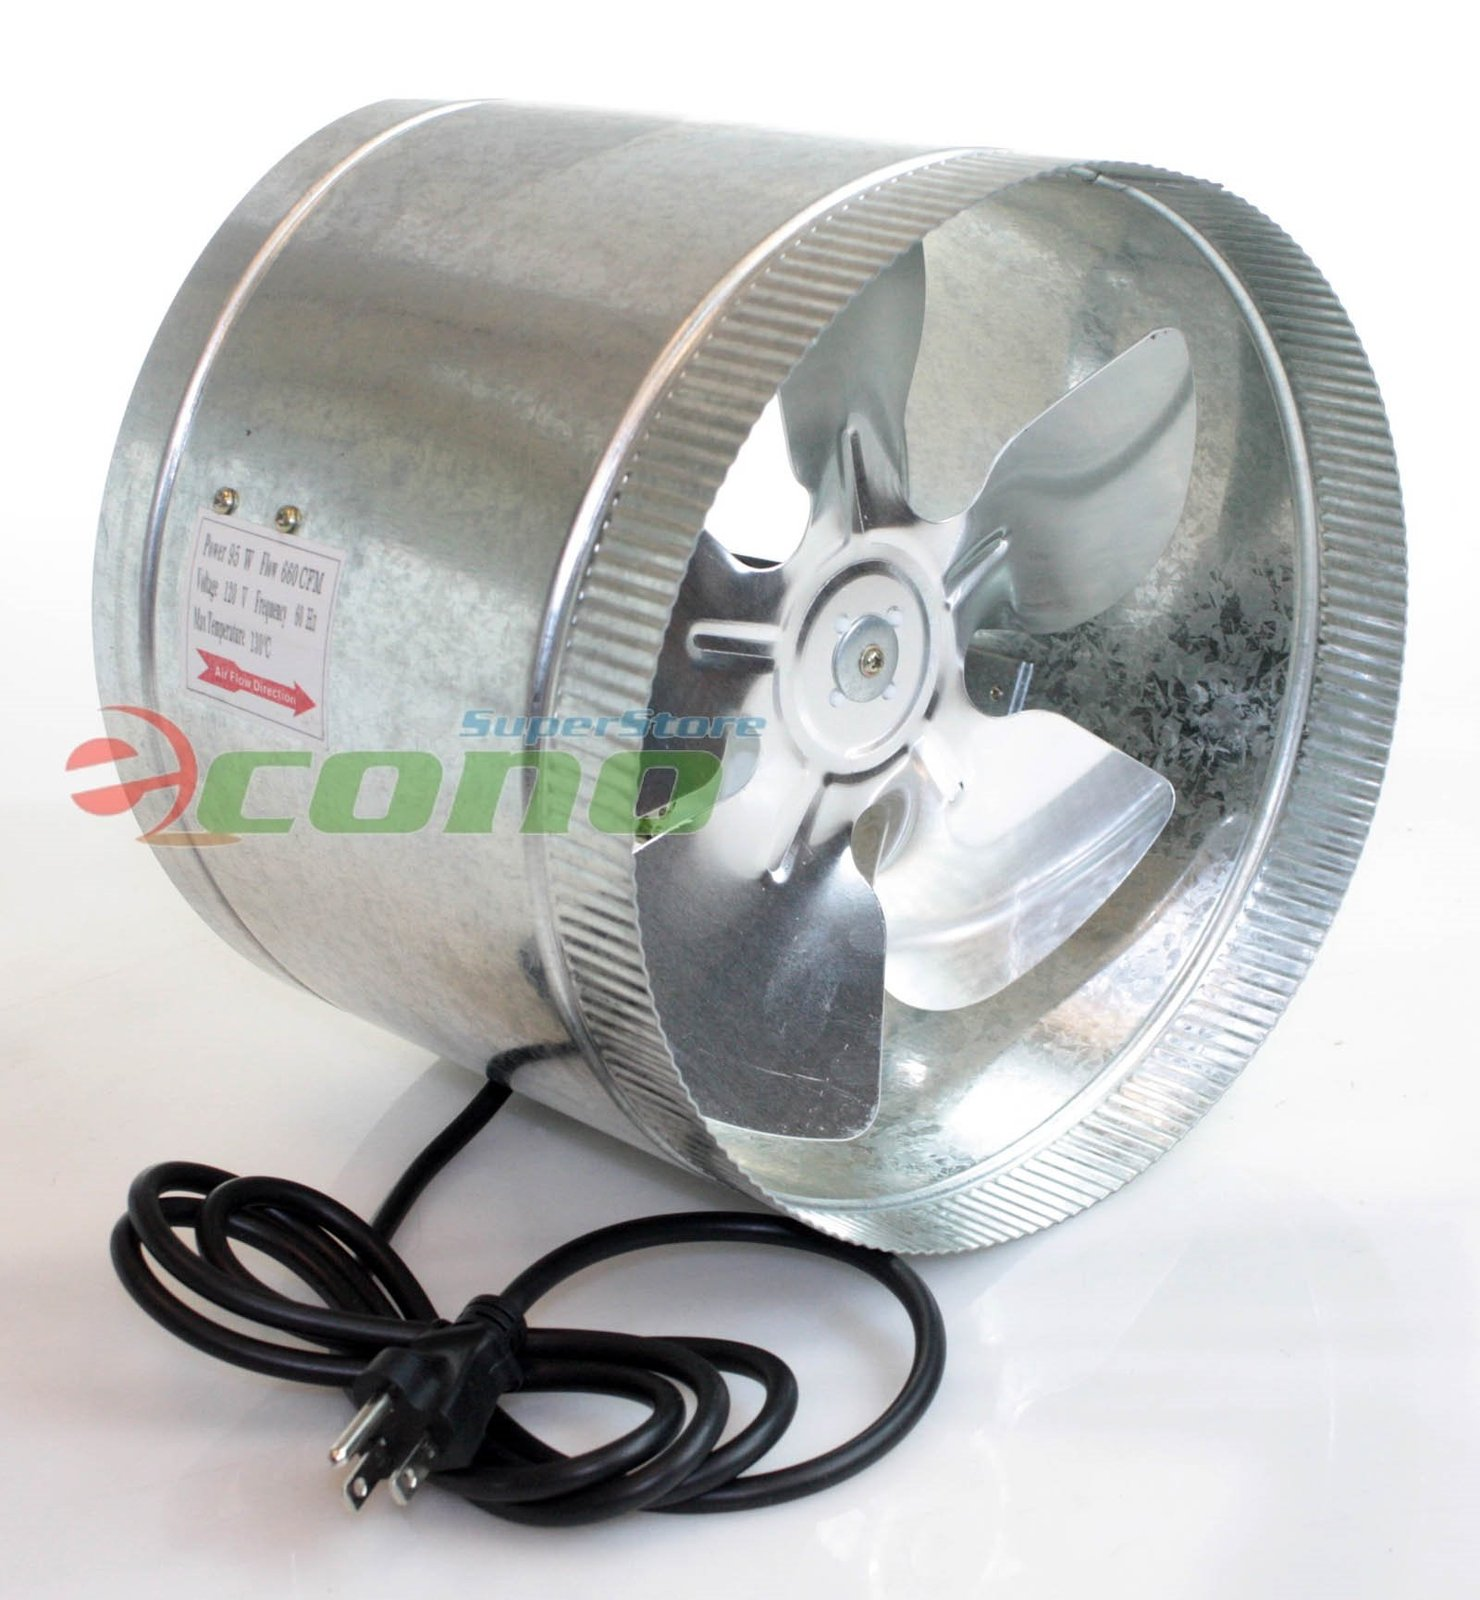 10 Inch Inline Fan : Quot inch duct booster fan exhaust vent air cooled